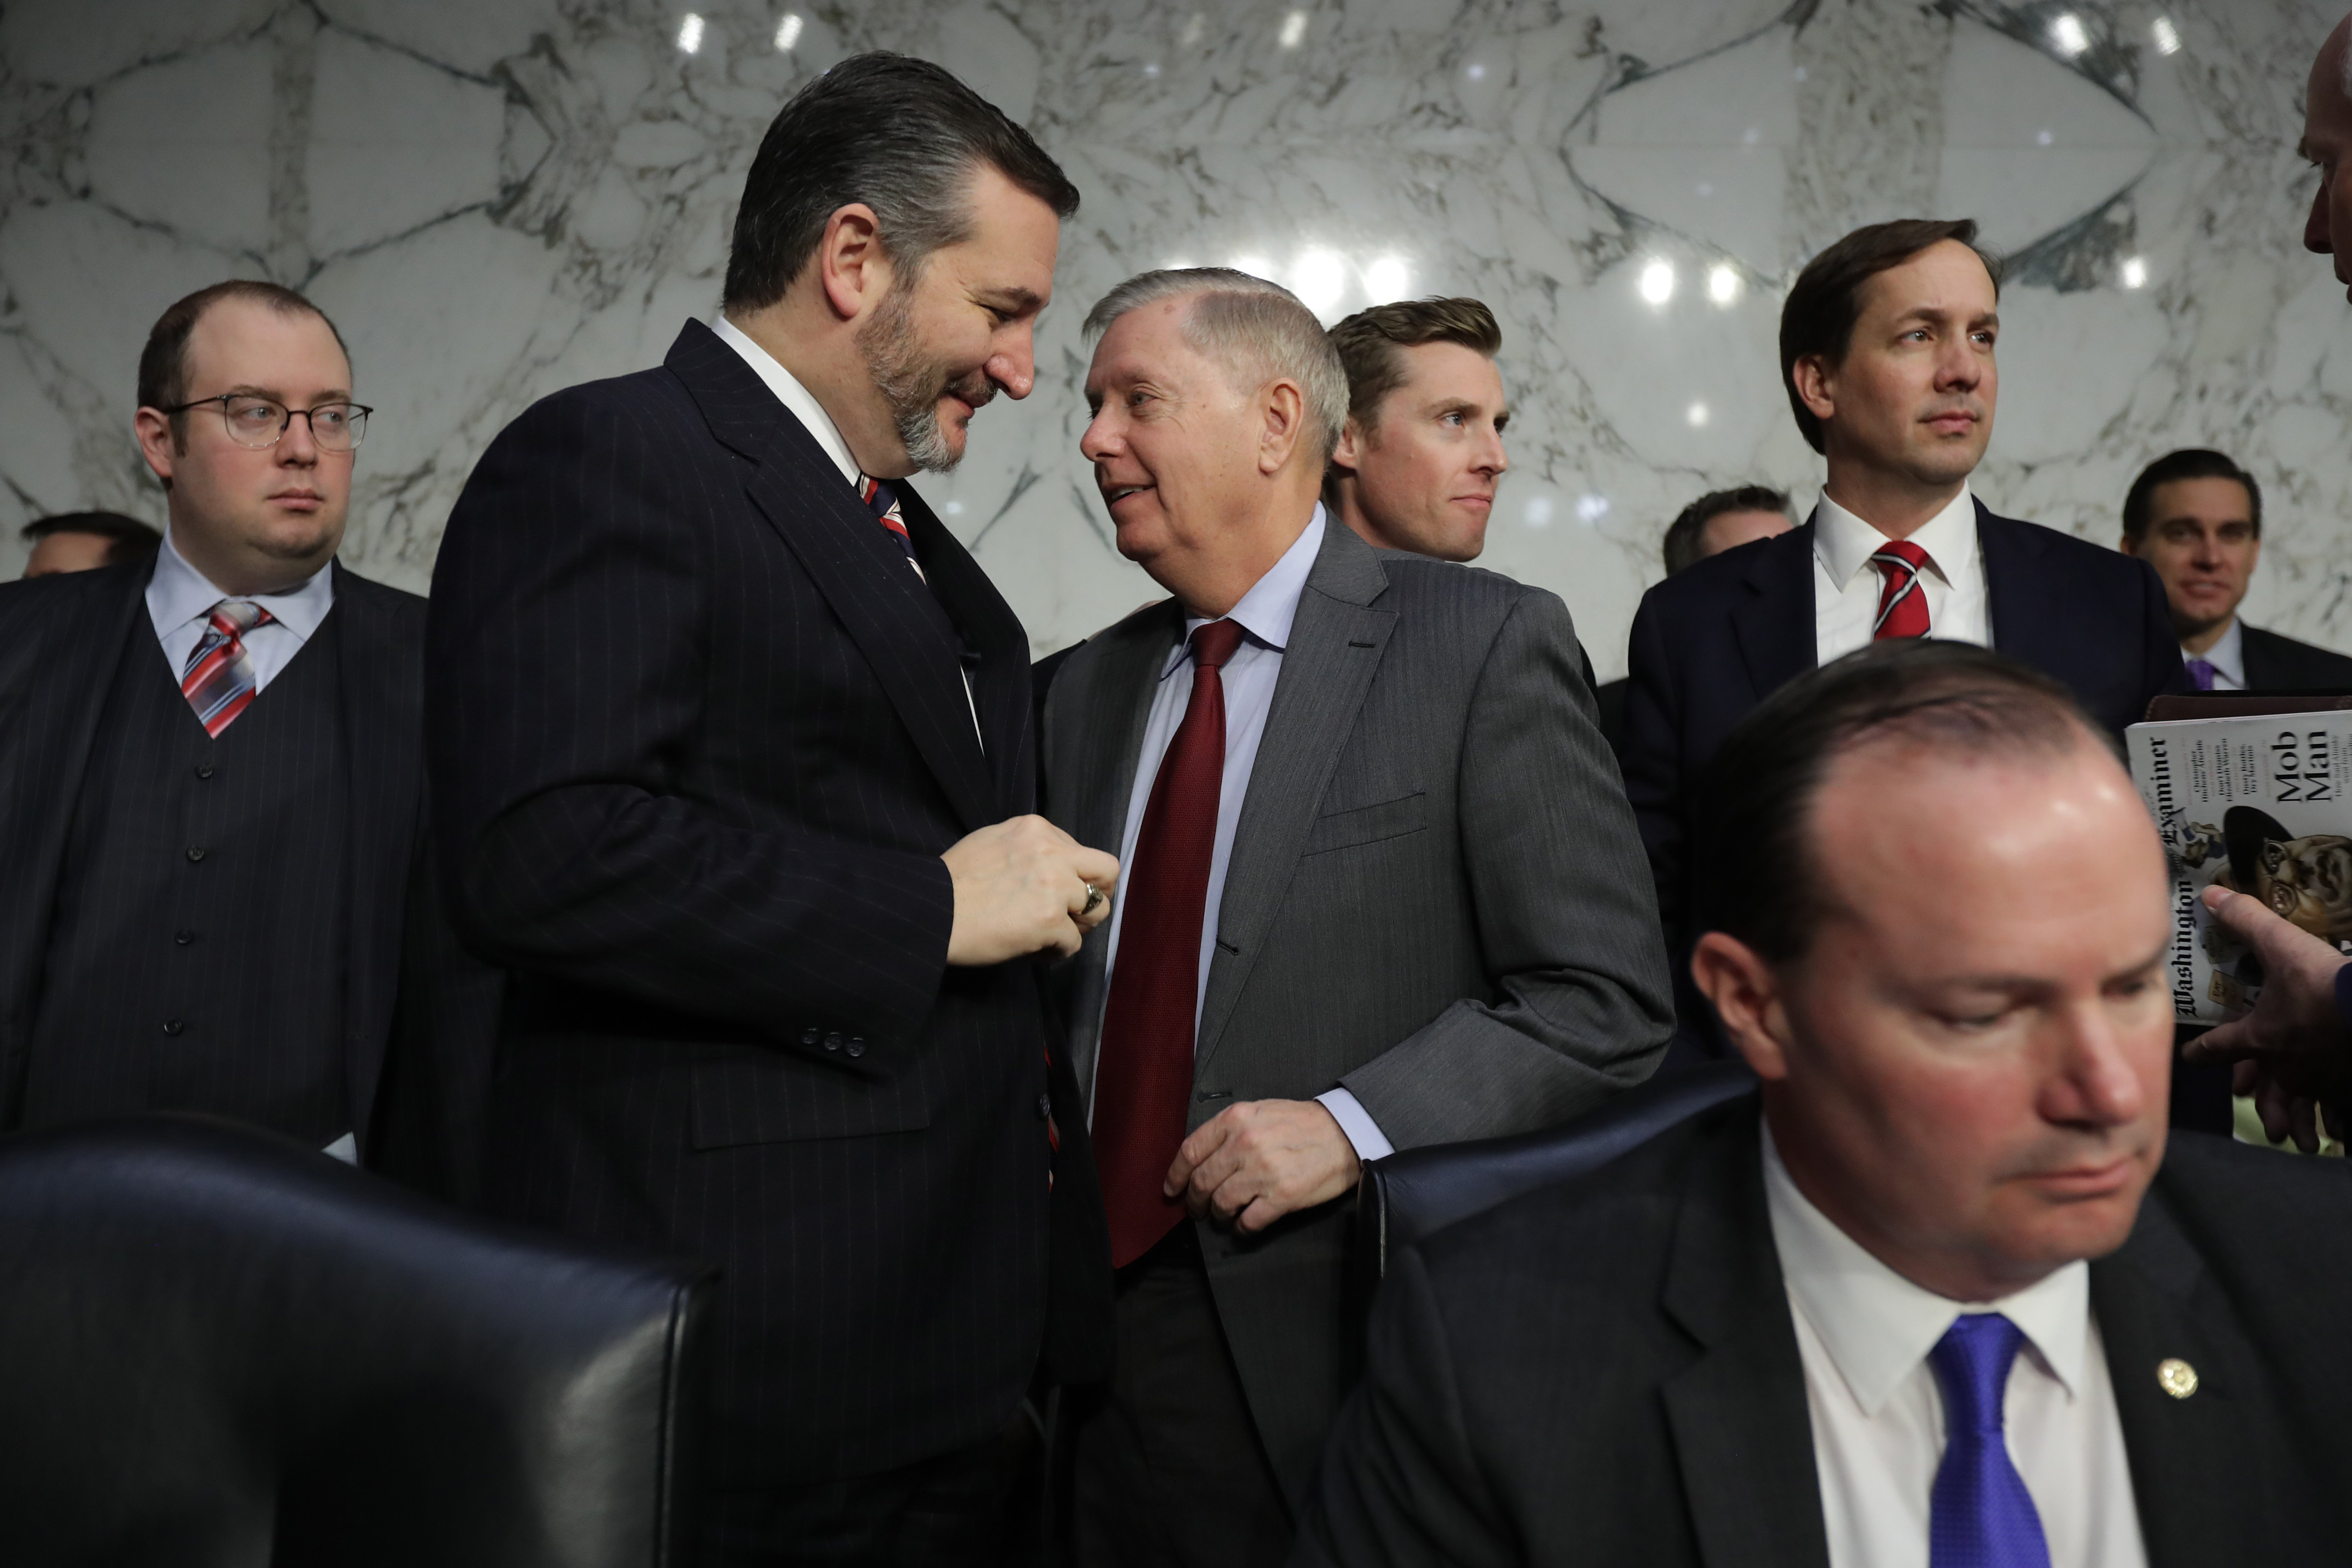 Senate Judiciary Committee Chairman Lindsey Graham talks with Sen. Ted Cruz during a break in the confirmation hearing for William Barr on January 15, 2019. (Chip Somodevilla/Getty Images)